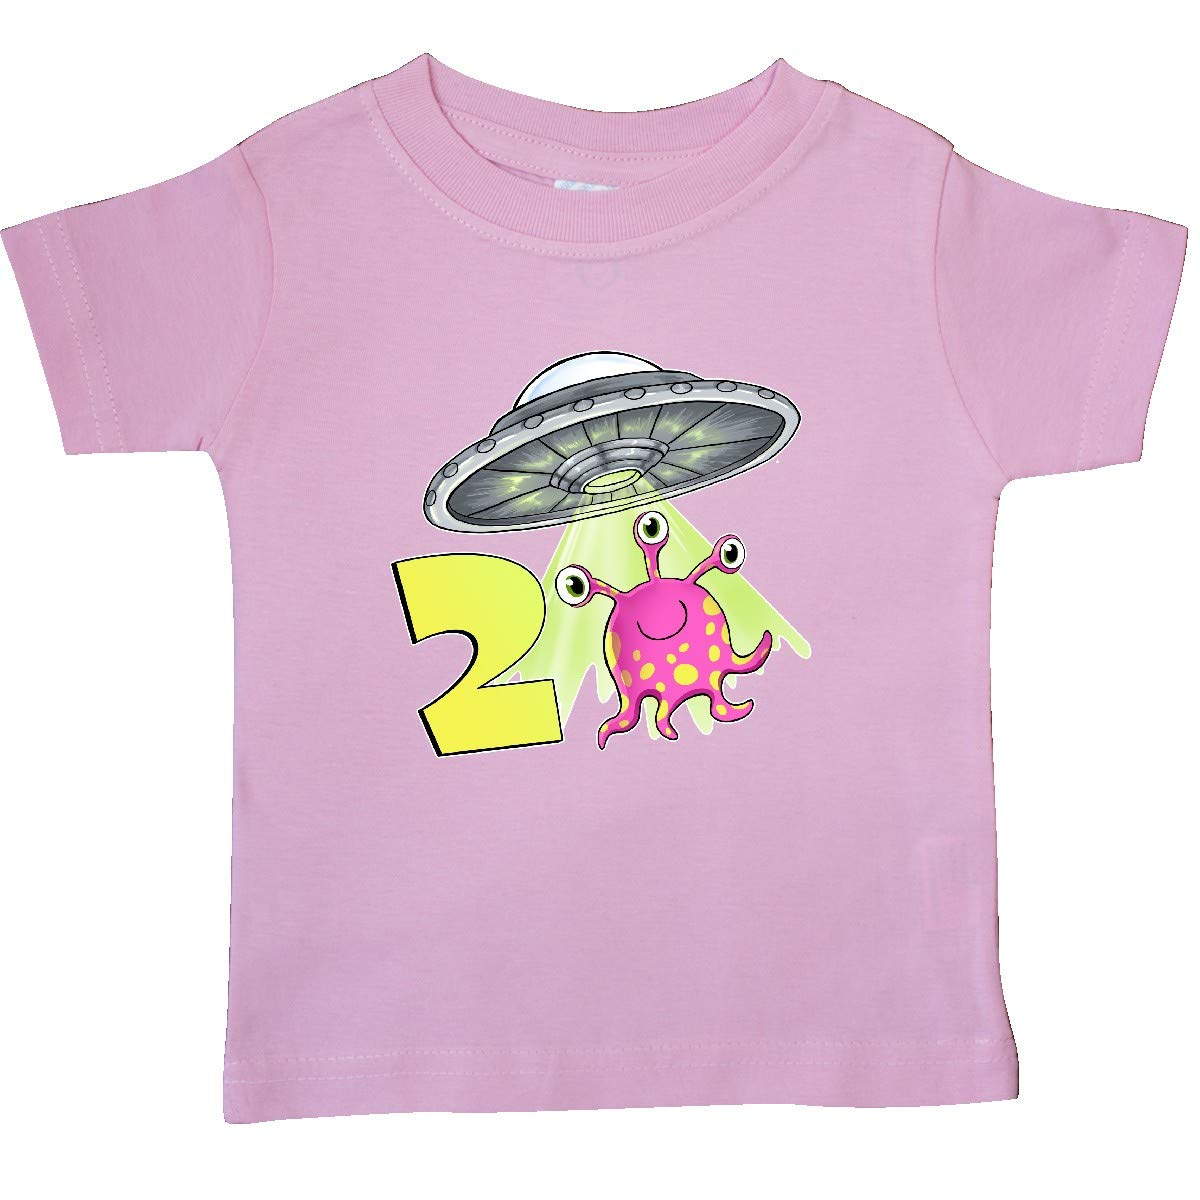 Cute Pink Alien UFO Baby T-Shirt inktastic Second Birthday